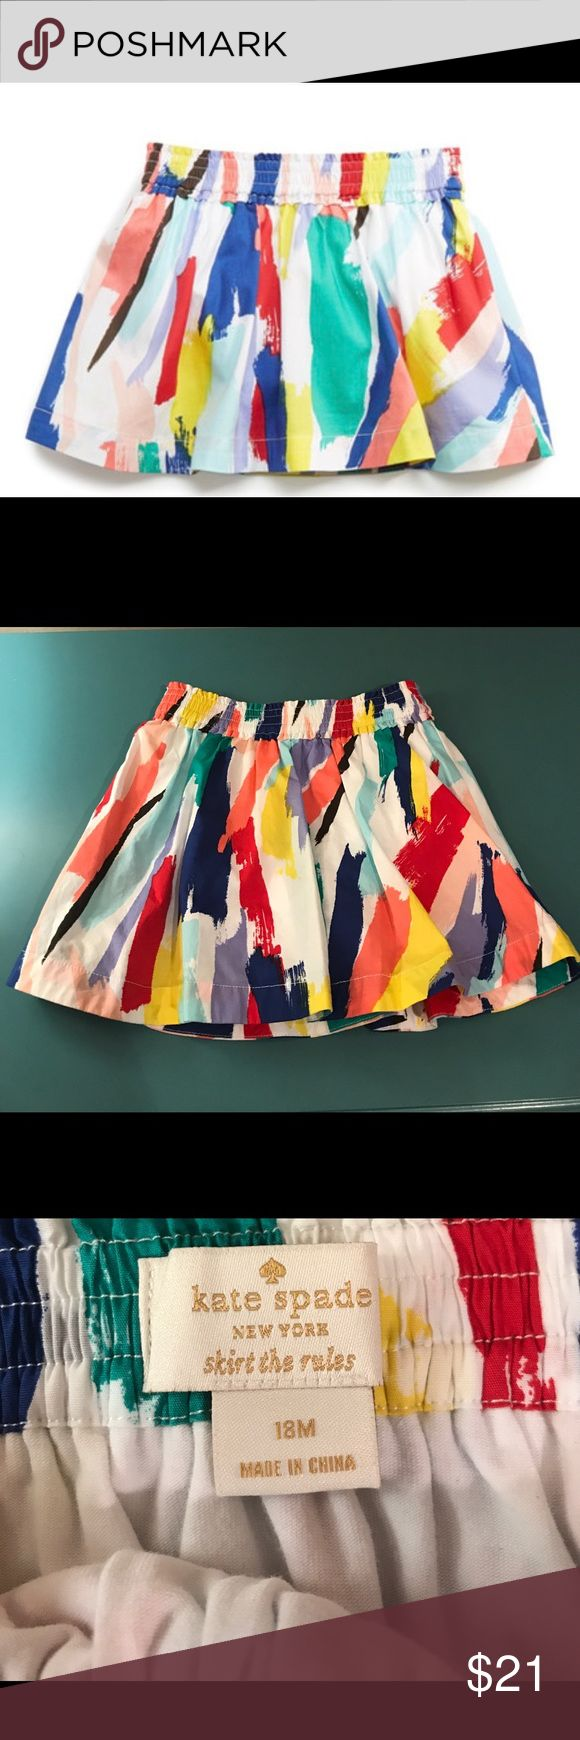 kate spade New York Girls Brushstroke Skirt 18mos A smocked waistband make this fun-loving skirt both comfortable and easy. The artistic brushstroke print adds an adorable pop of color. Excellent Condition; worn once. Fitted attached bloomers; 97% cotton, 3% spandex. kate spade Bottoms Skirts